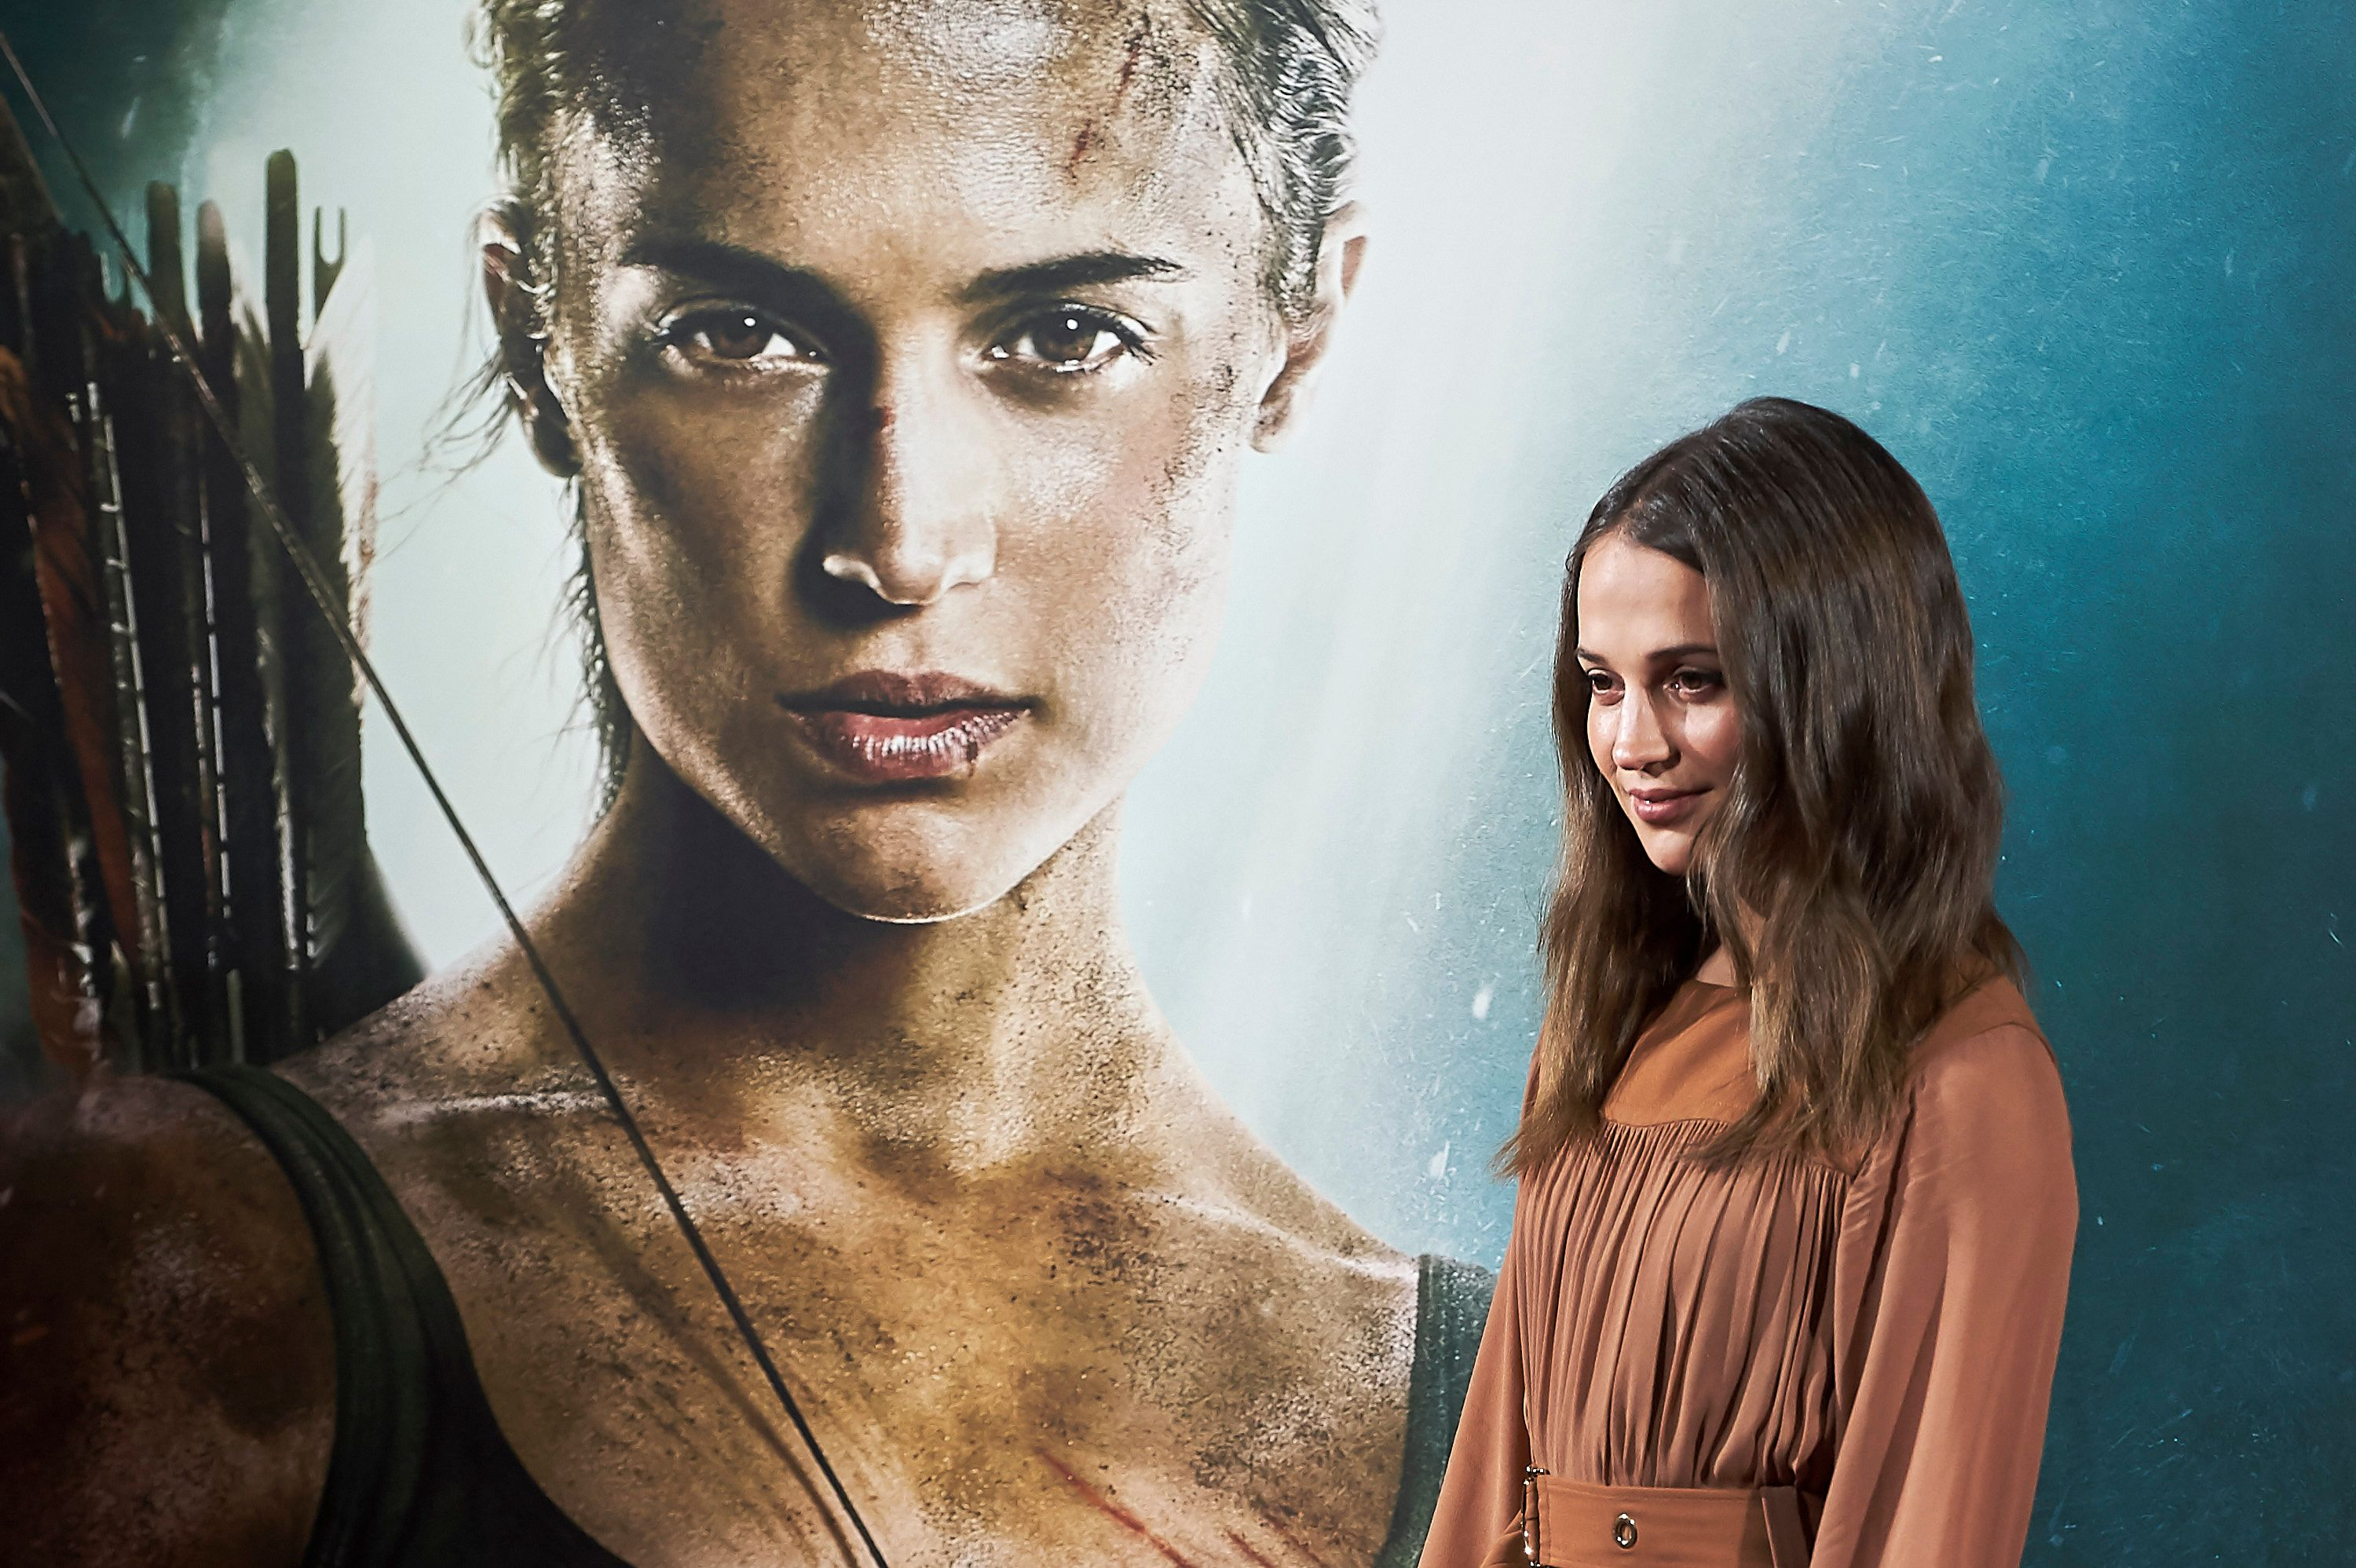 Alicia Vikander smiles in a beige dress in front of a billboard with her photo.